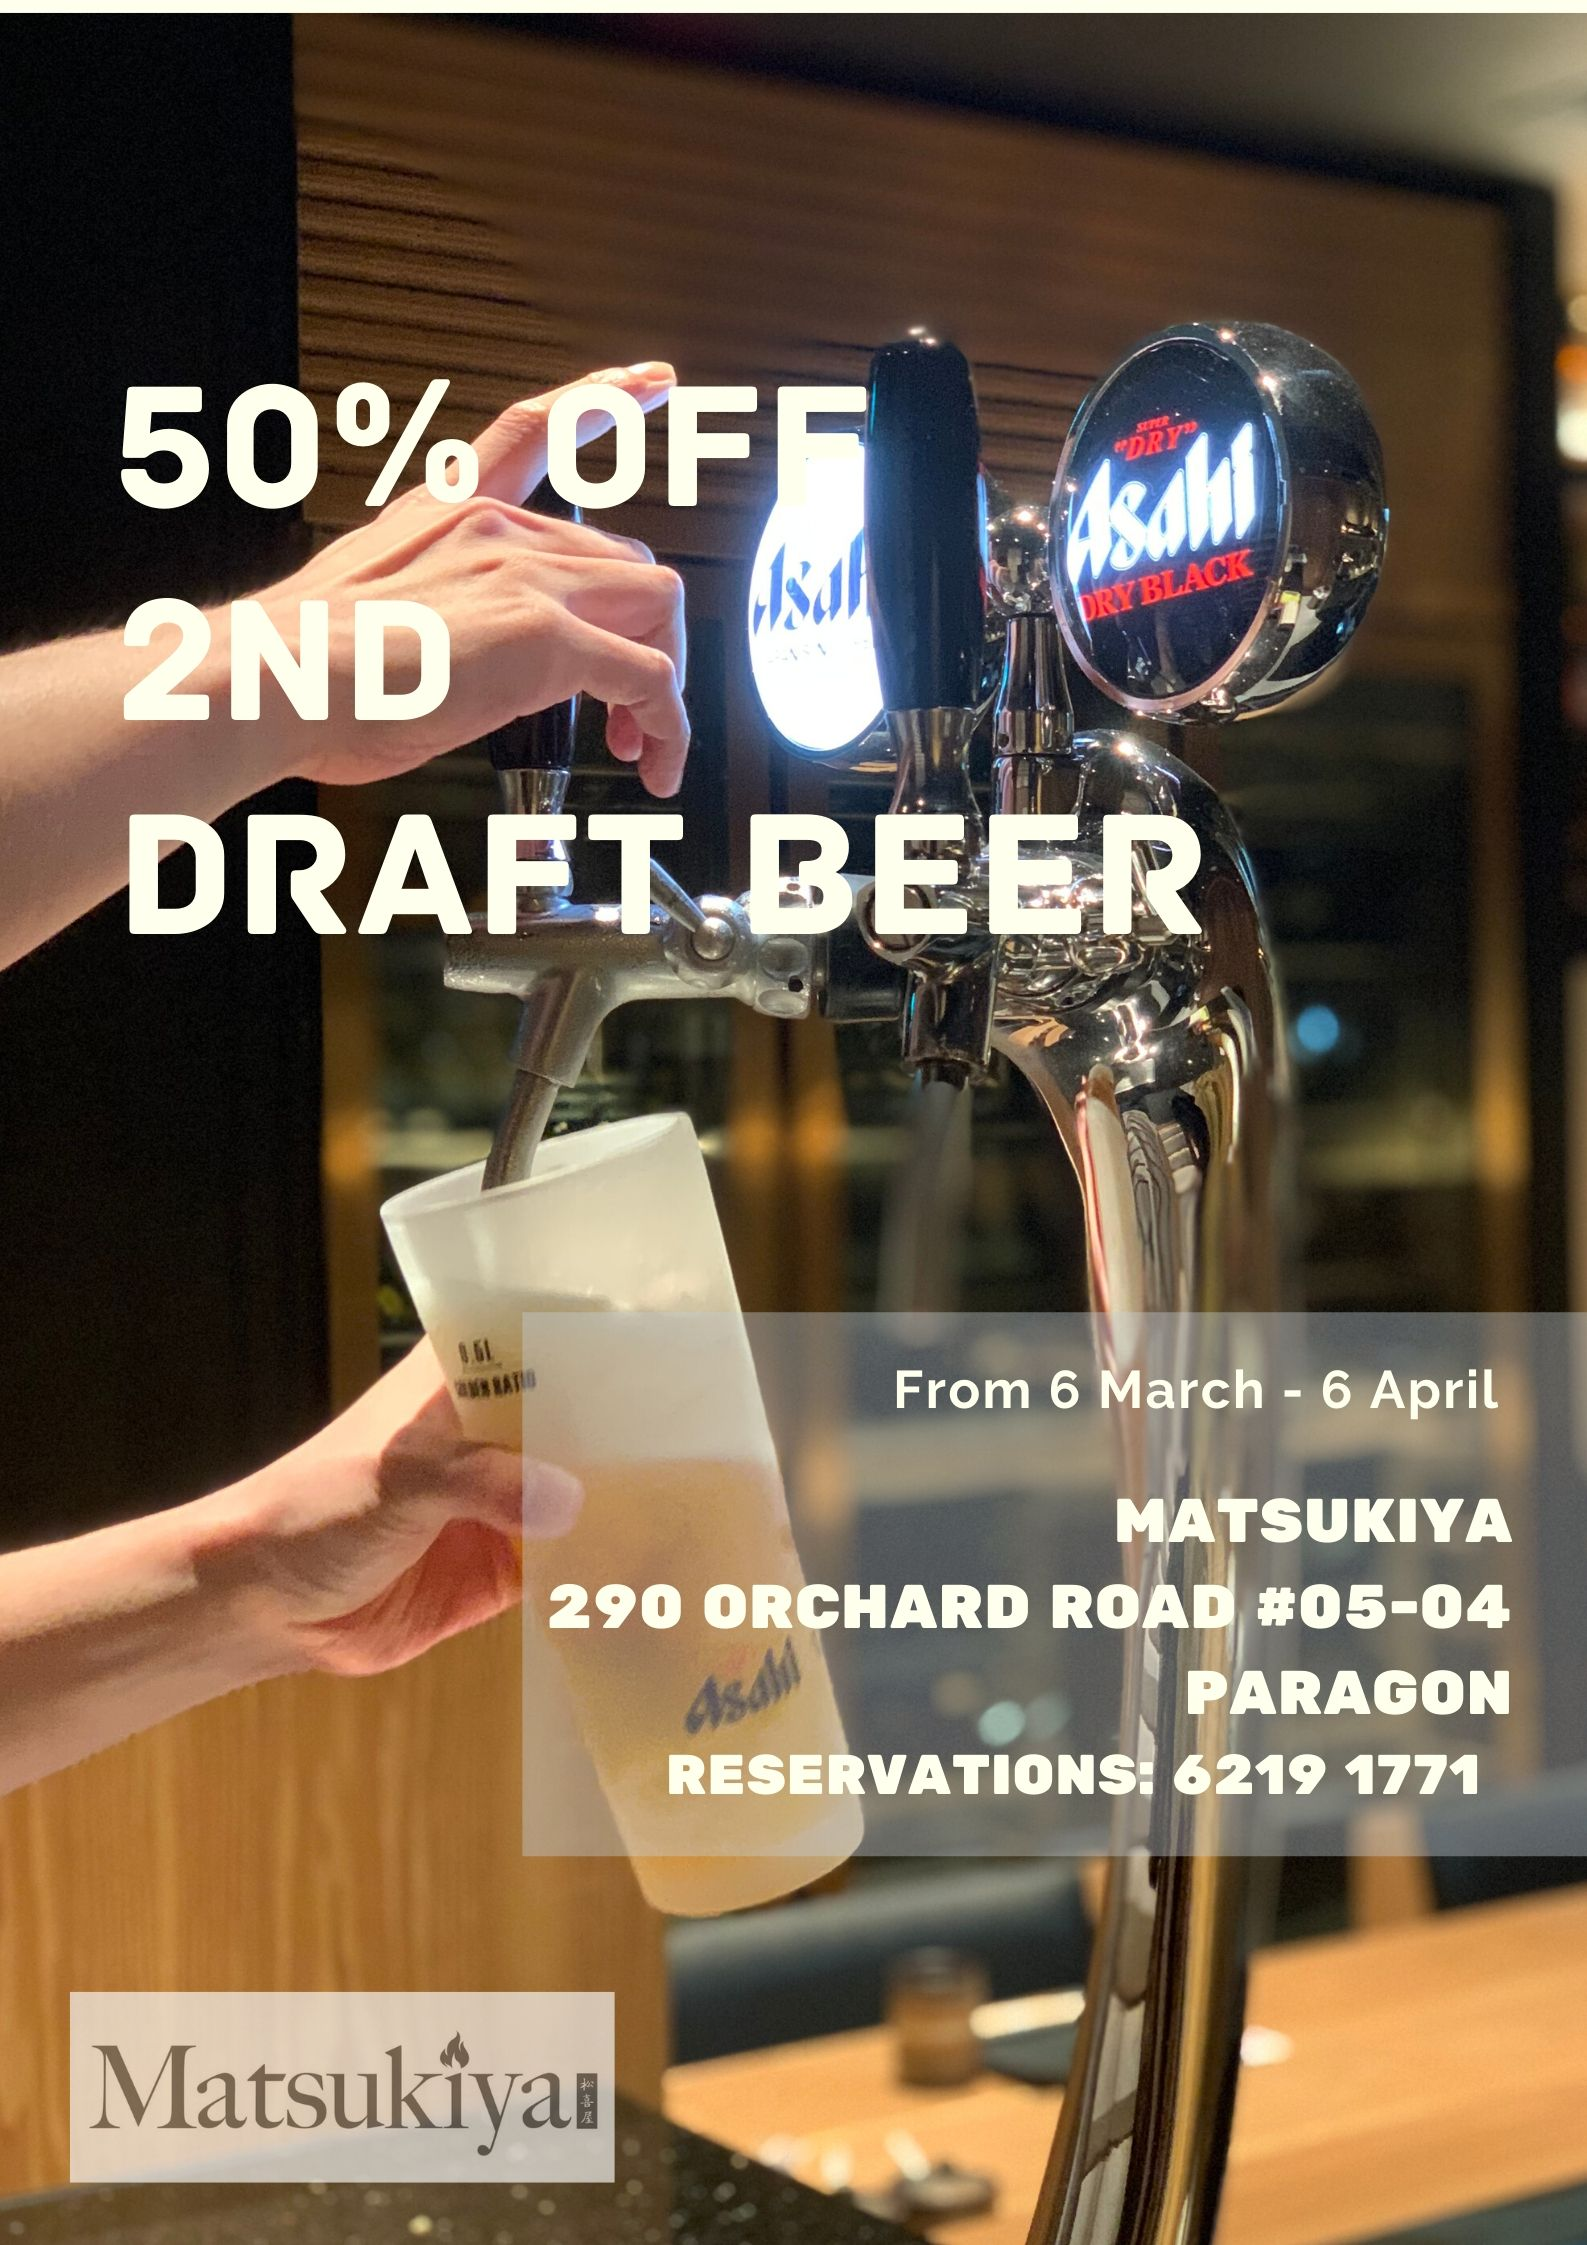 [Promotion] 50% off 2nd draft beer from 6 March - 6 April 2020 at Matsukiya!   Why Not Deals & Promotions